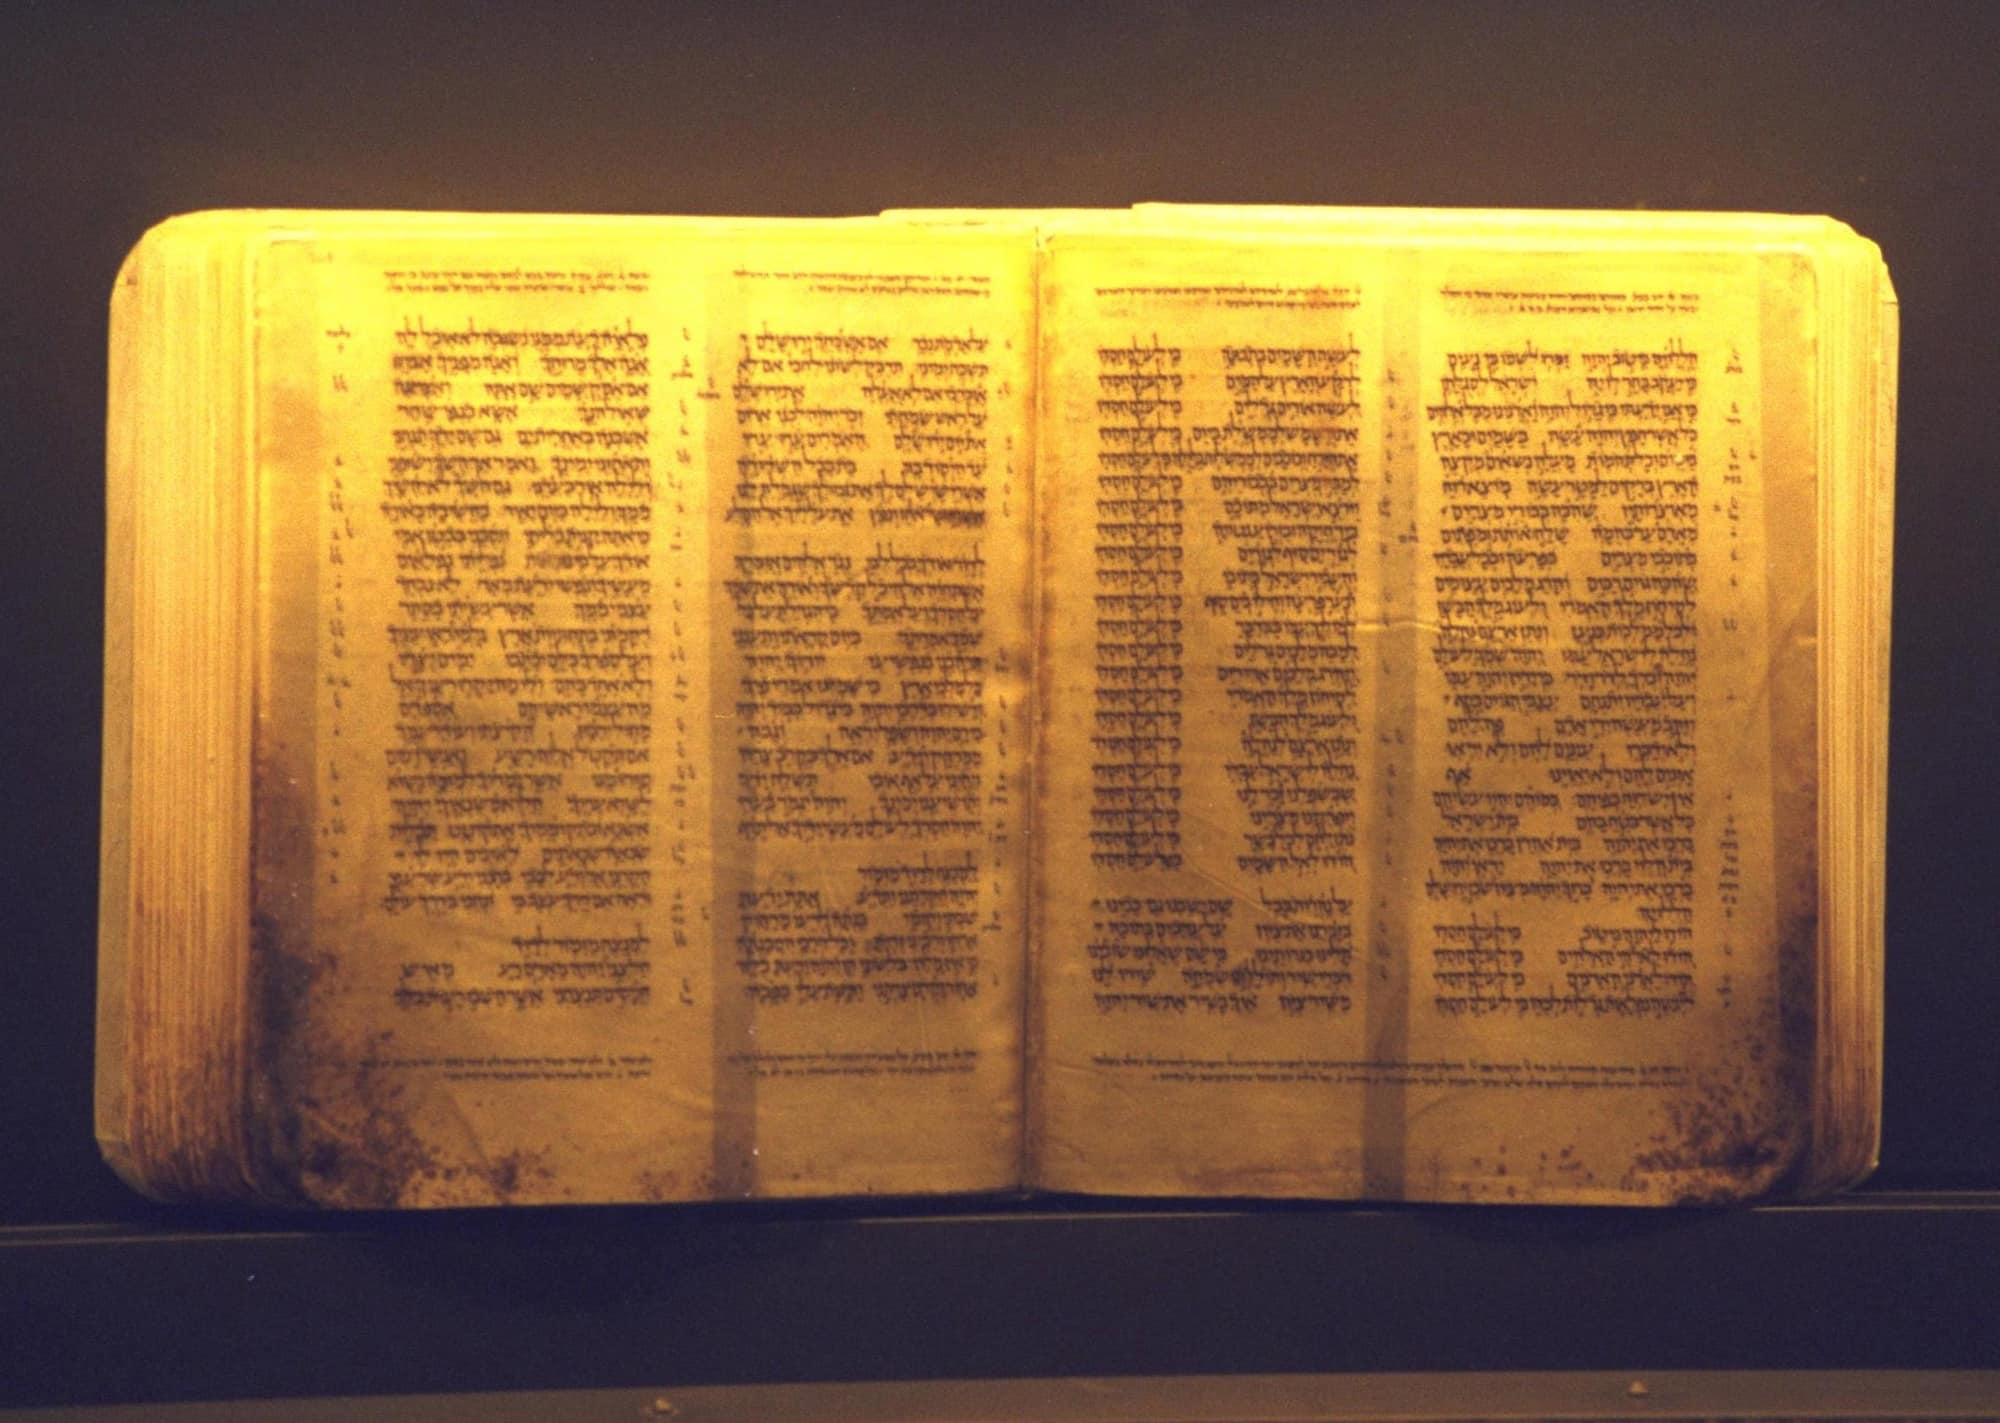 How Was the Hebrew of the Bible Originally Pronounced?